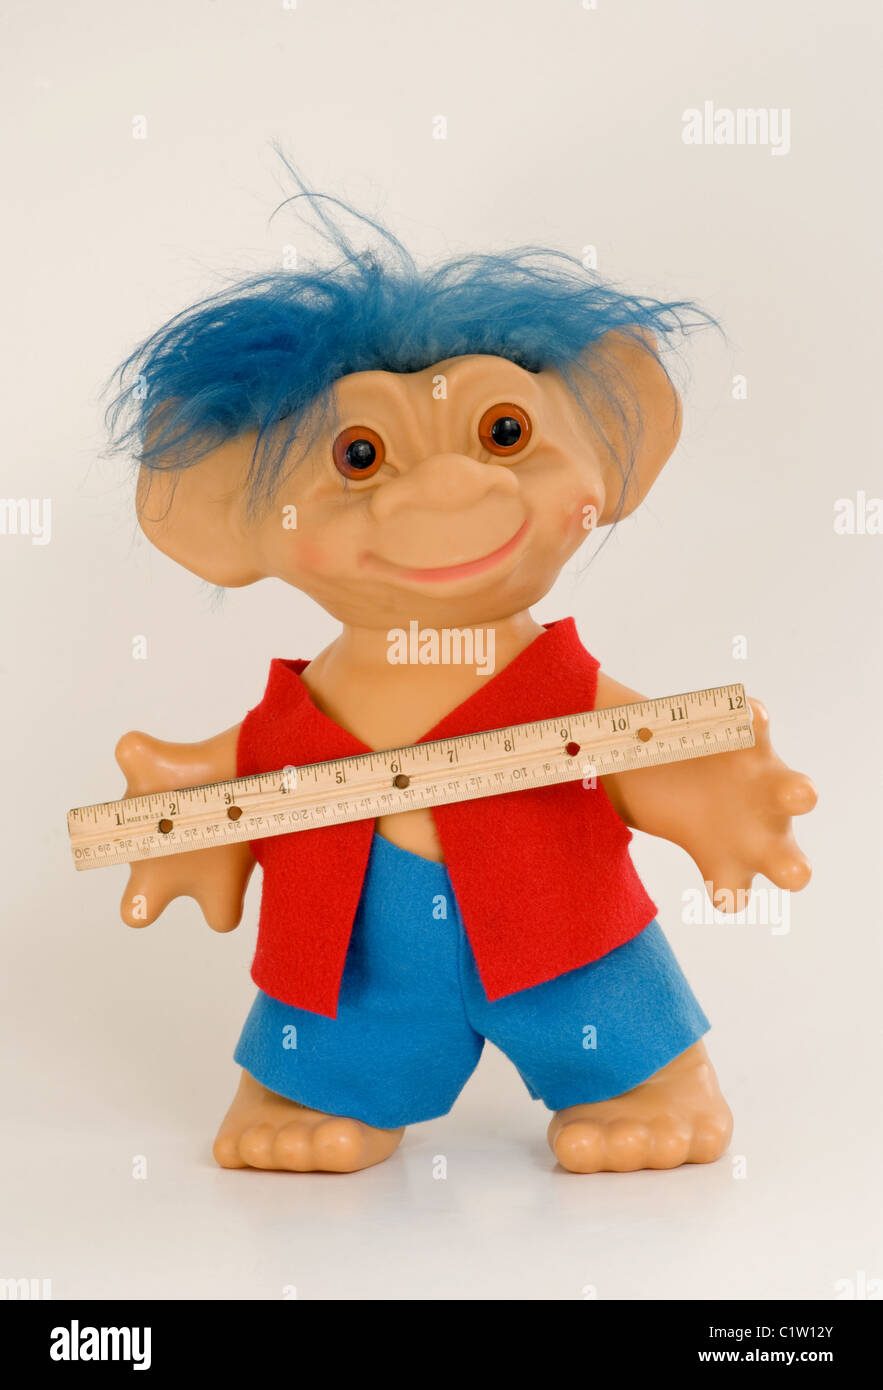 Troll boy with blue hair holding a ruler with inches and centimeters - Stock Image